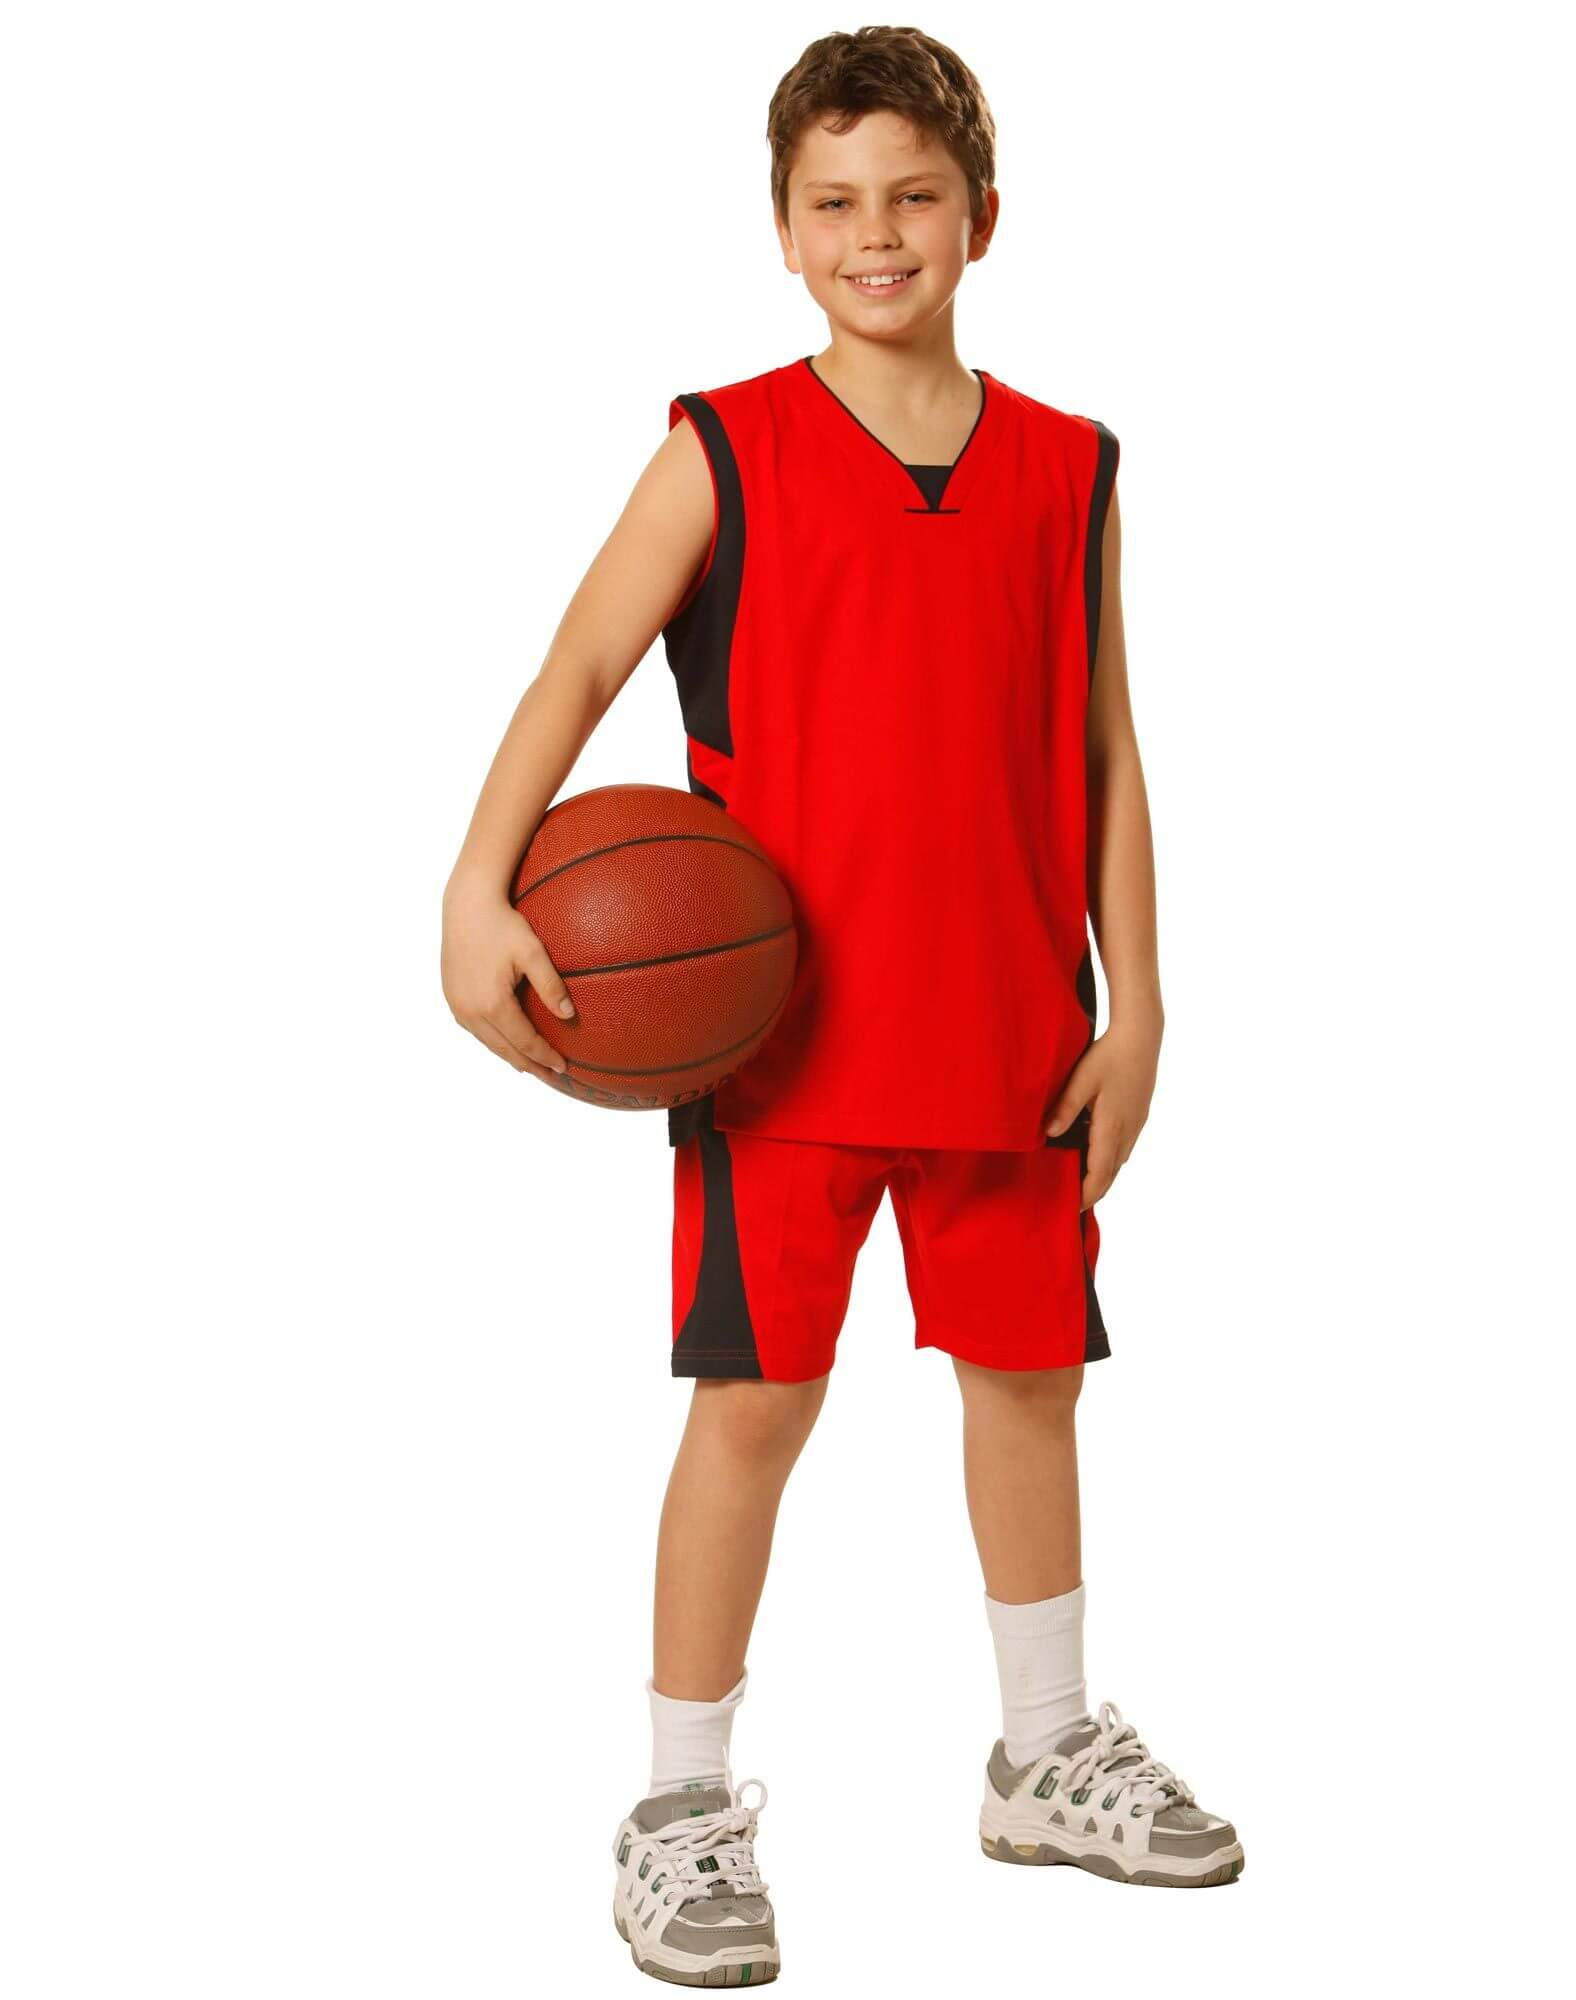 Kids Basketball Jerseys Manufacturers in Nagpur